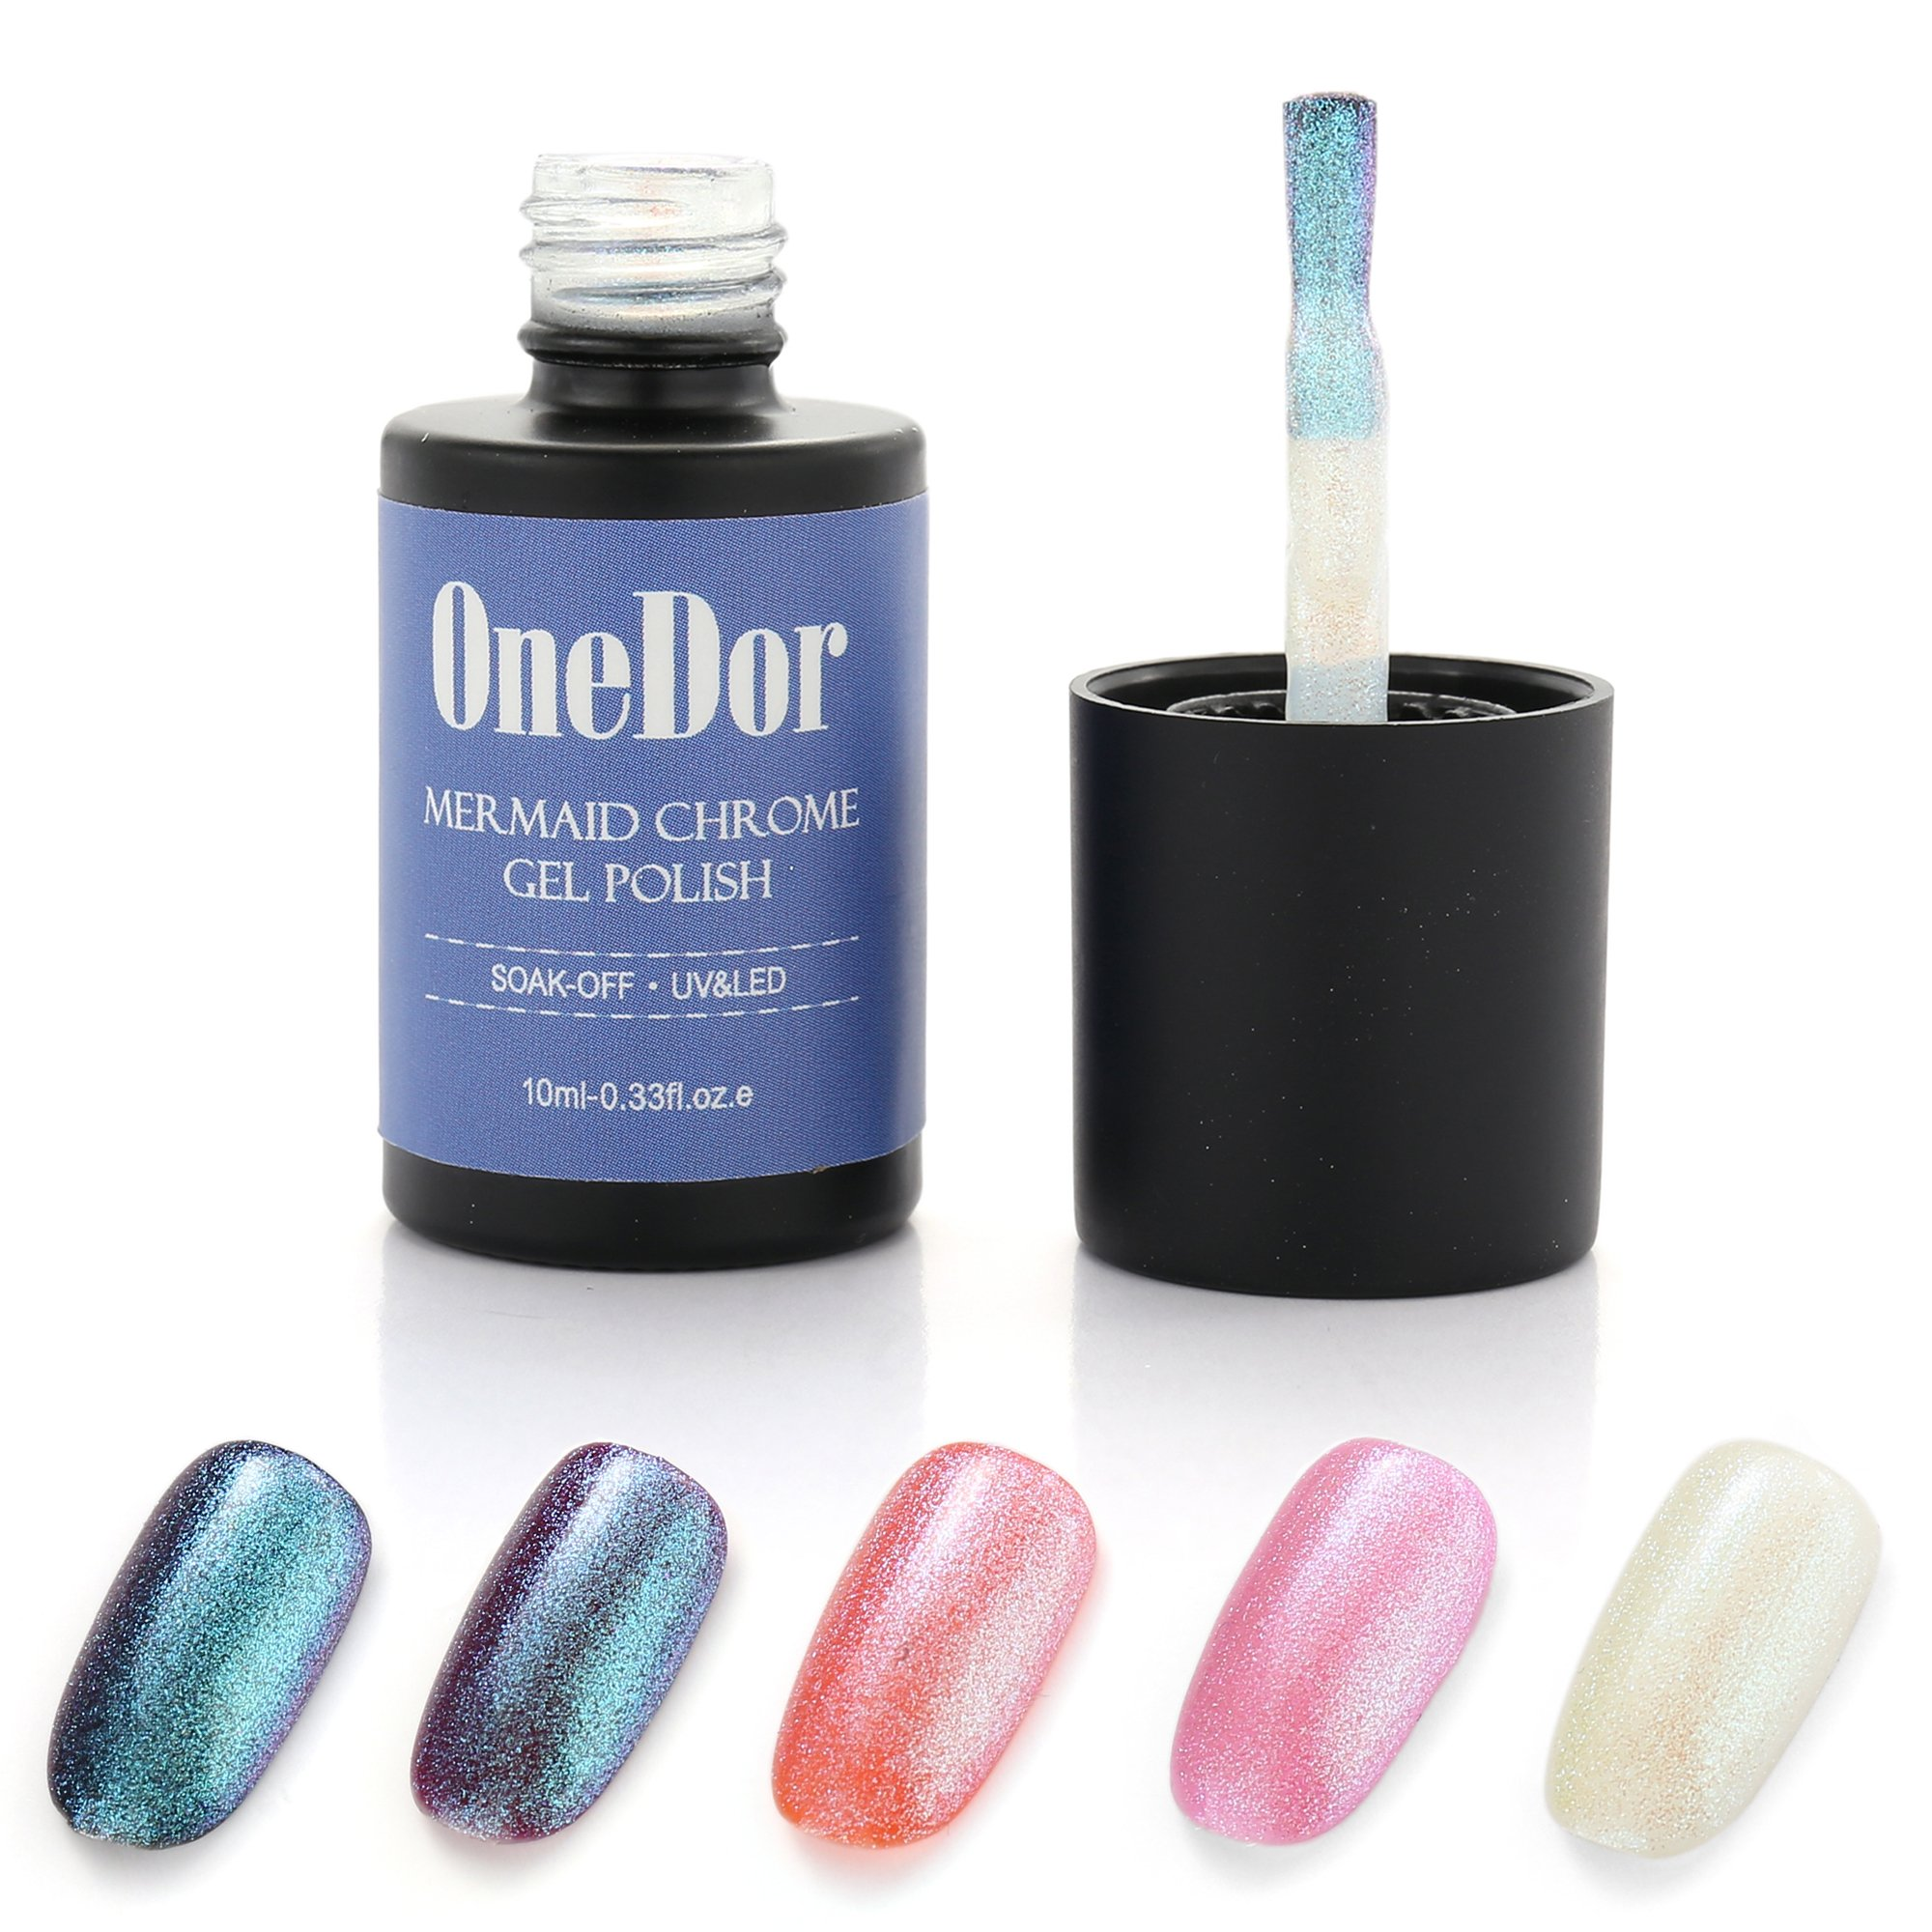 OneDor Mermaid Gel Polish Enhancer - UV Led Cured Required - Upgraded Replacement for Chrome Nail Powder (Ocean)